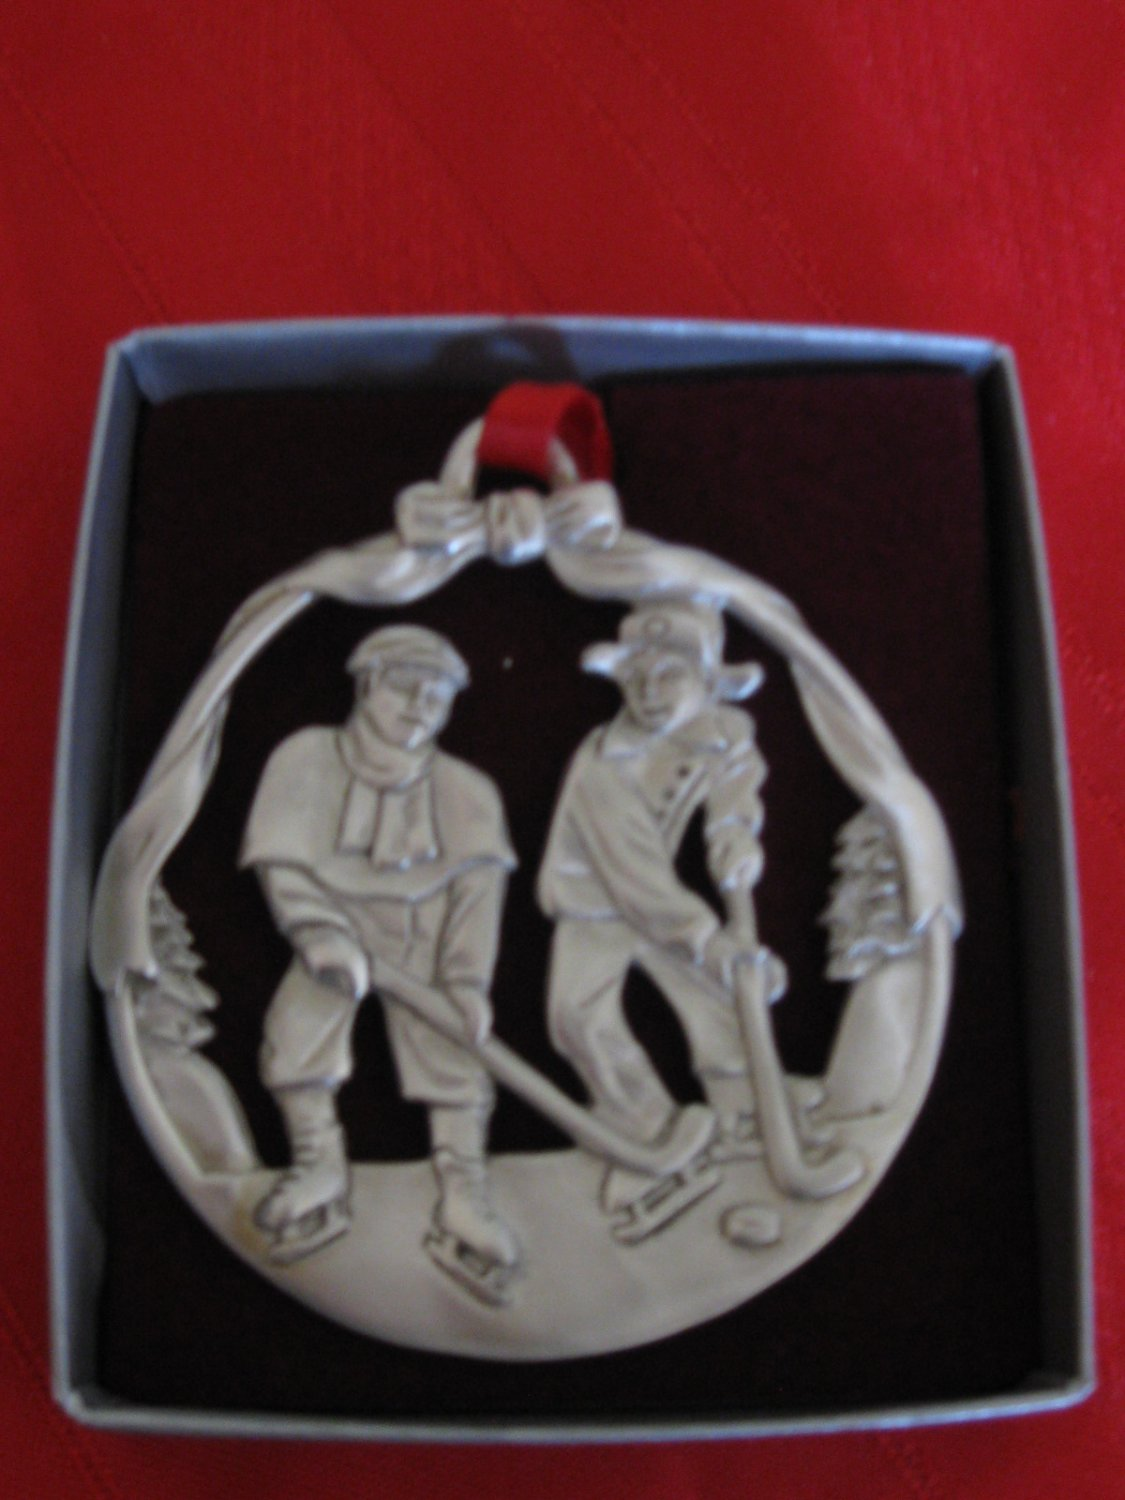 Very Nice Pewter Ornament With Children Playing Hockey by Oceanart 1998